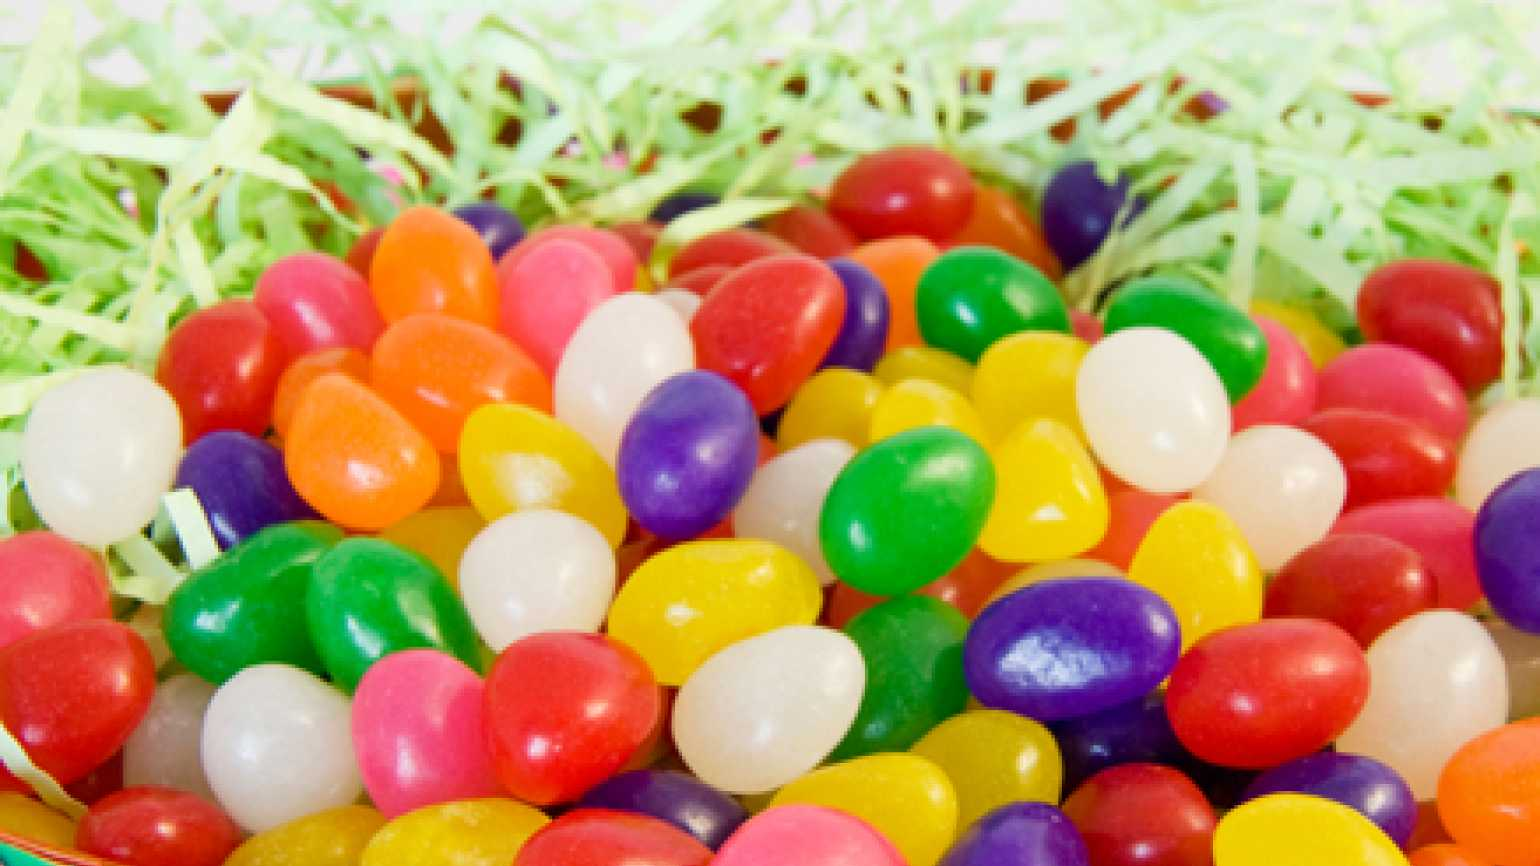 Jelly beans in an Easter basket